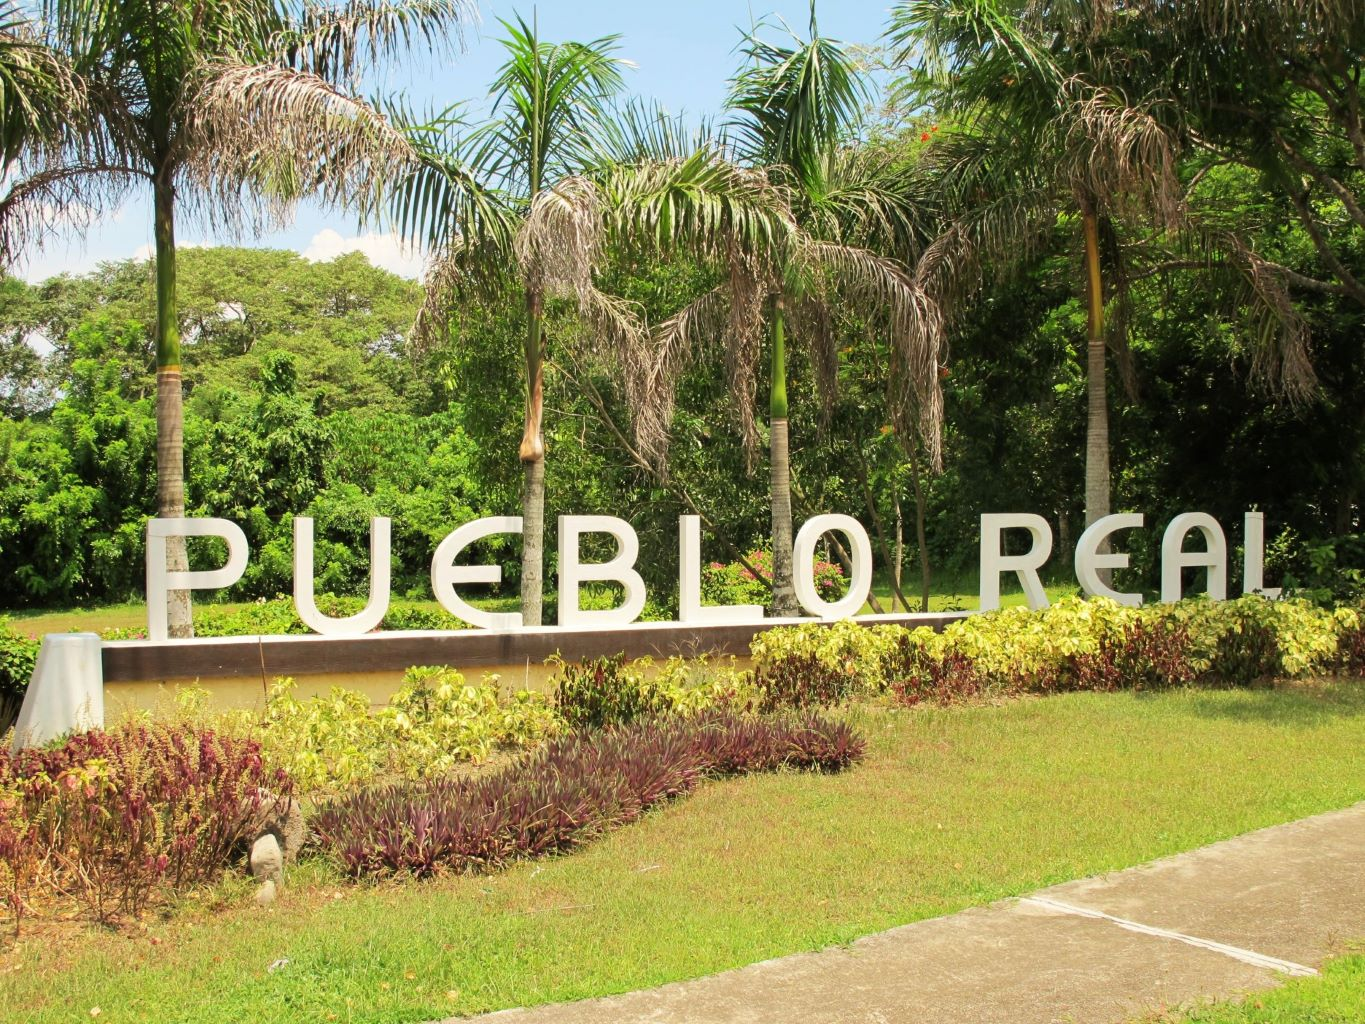 Lot for sale Tagaytay on House & Home Philippines